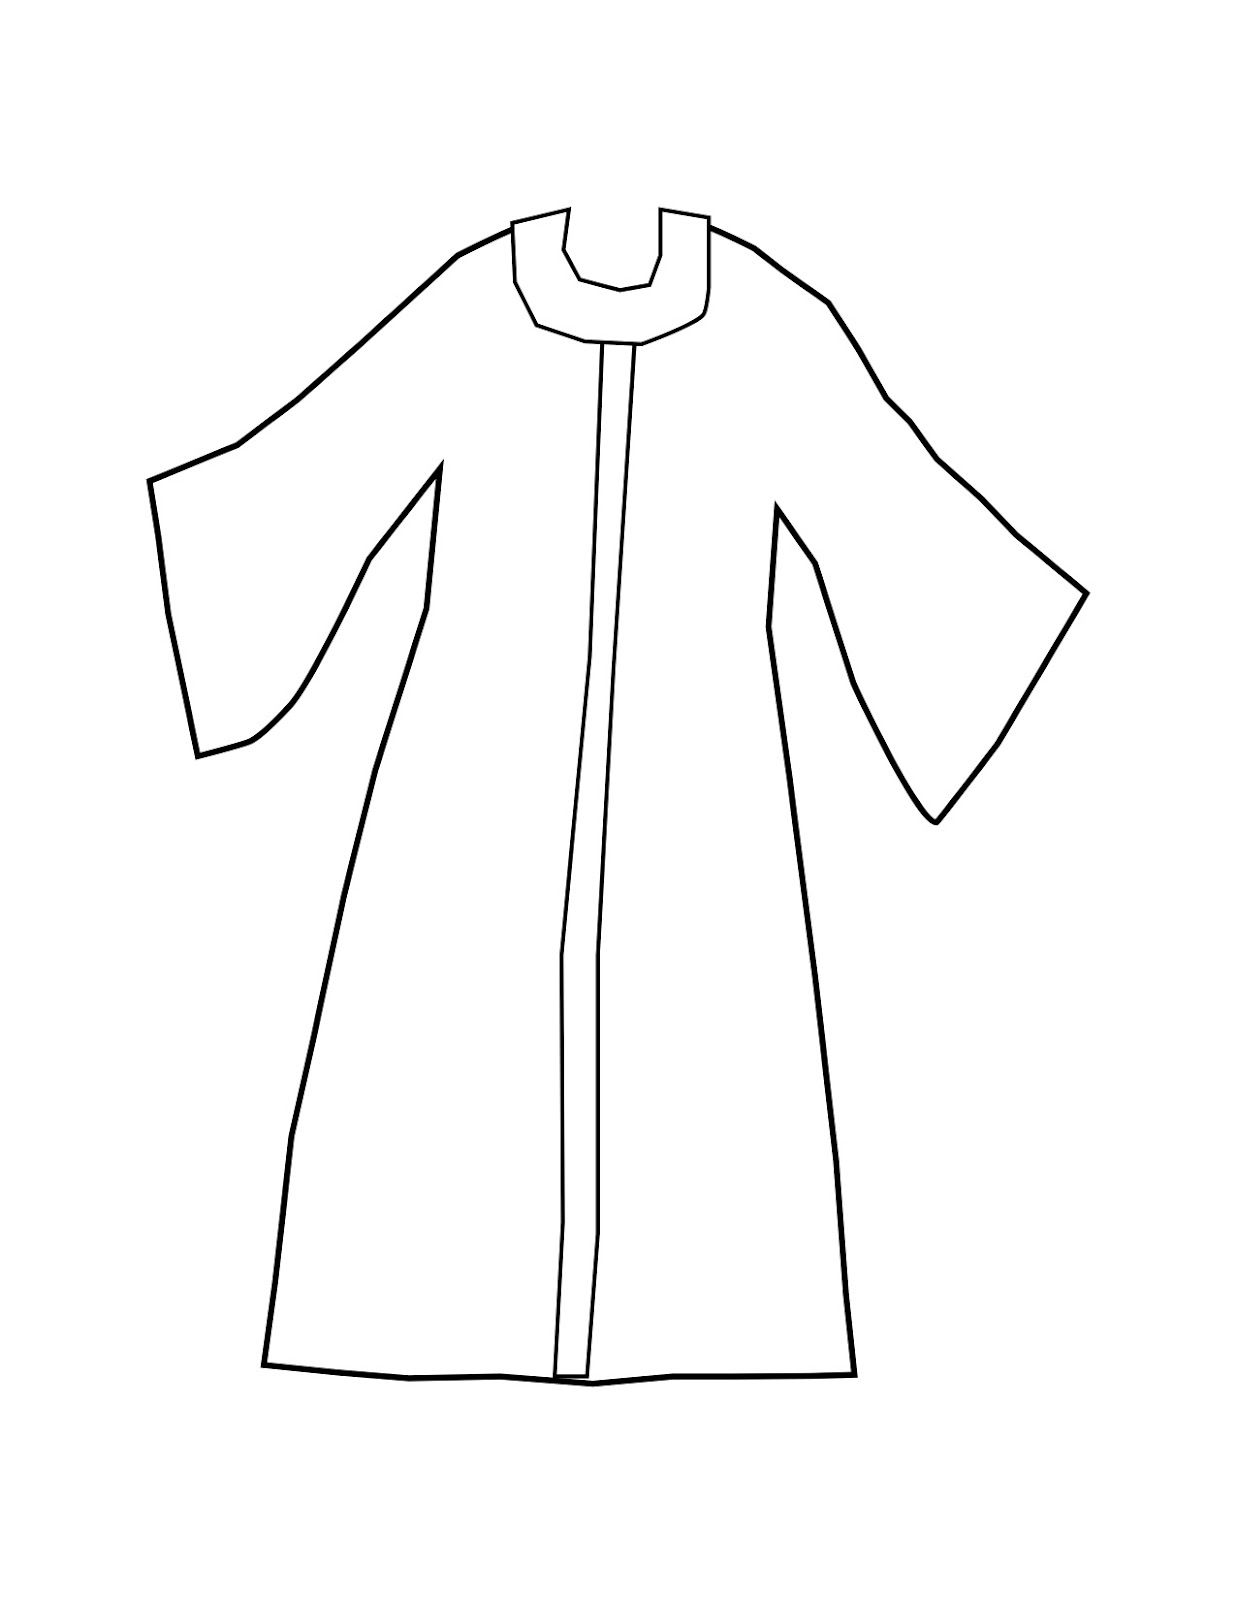 joseph coat of many colors coloring page joseph and the coat of many colors coloring page bible coat colors coloring page of joseph many